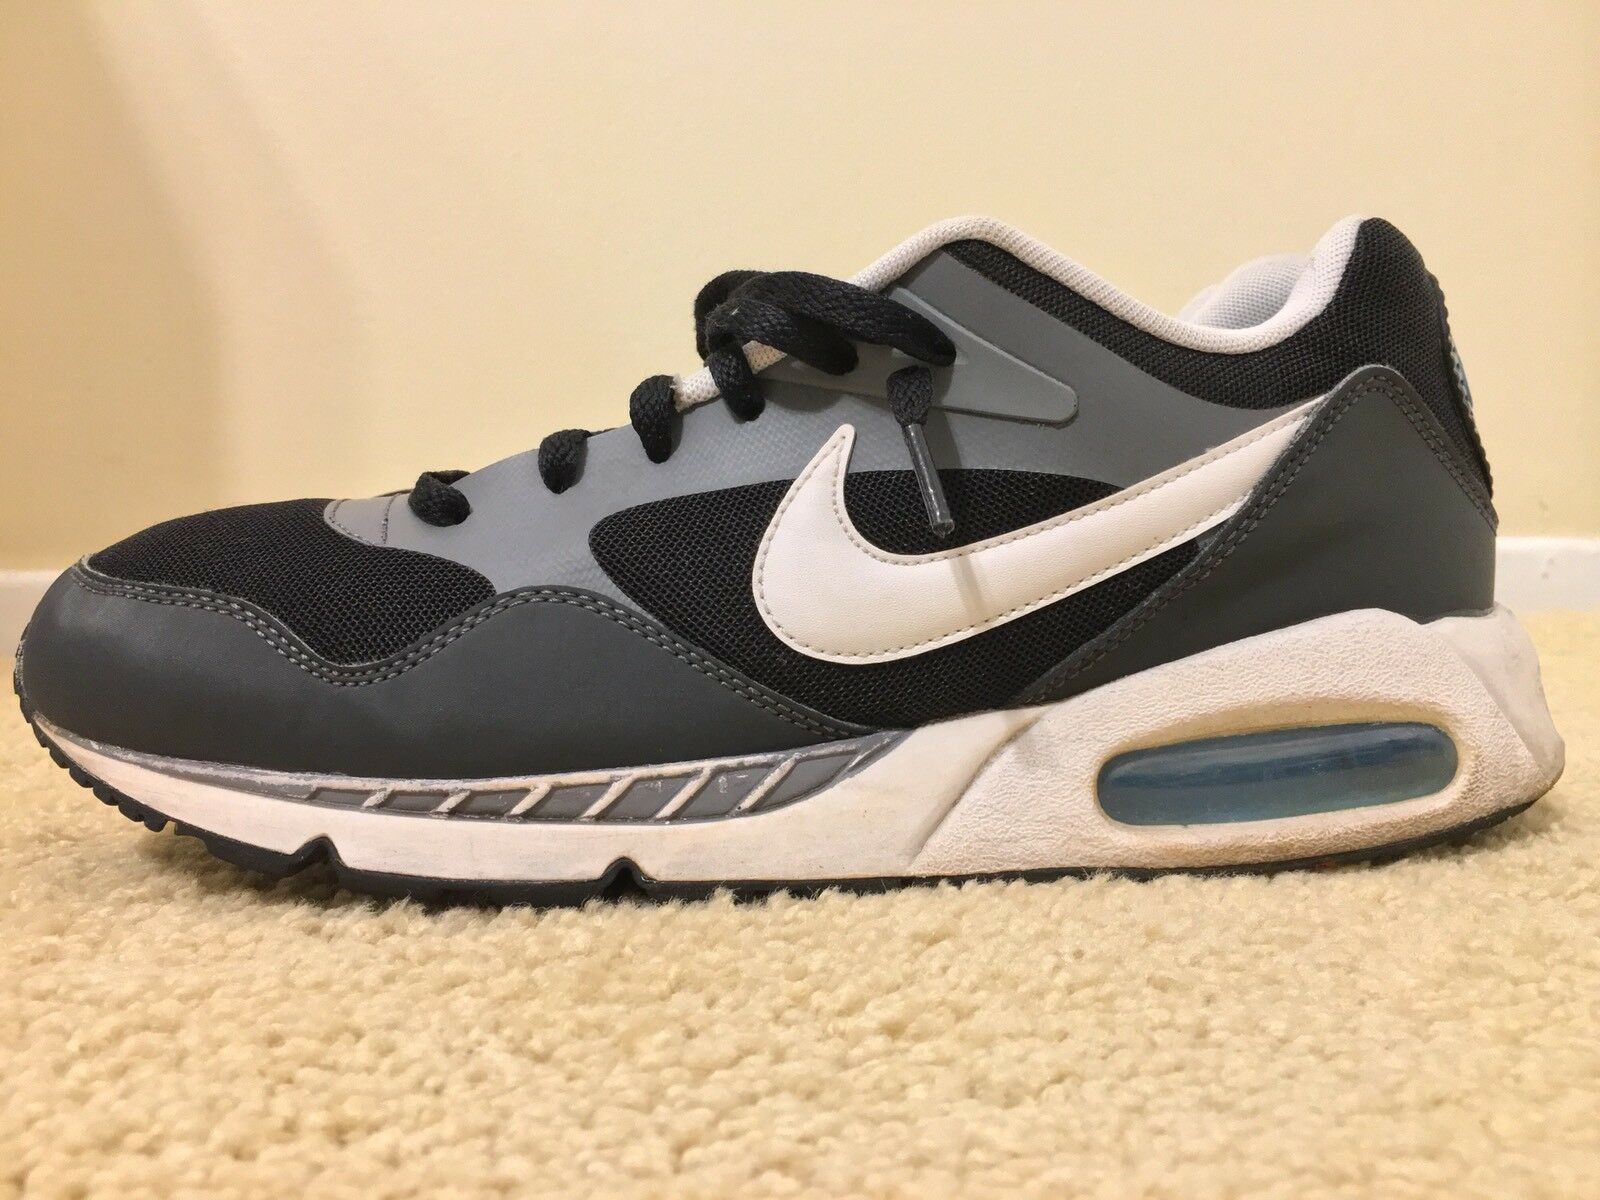 Nike Air Max Correlate, 525243-010, Black White, Mens Running Shoes, Size 10